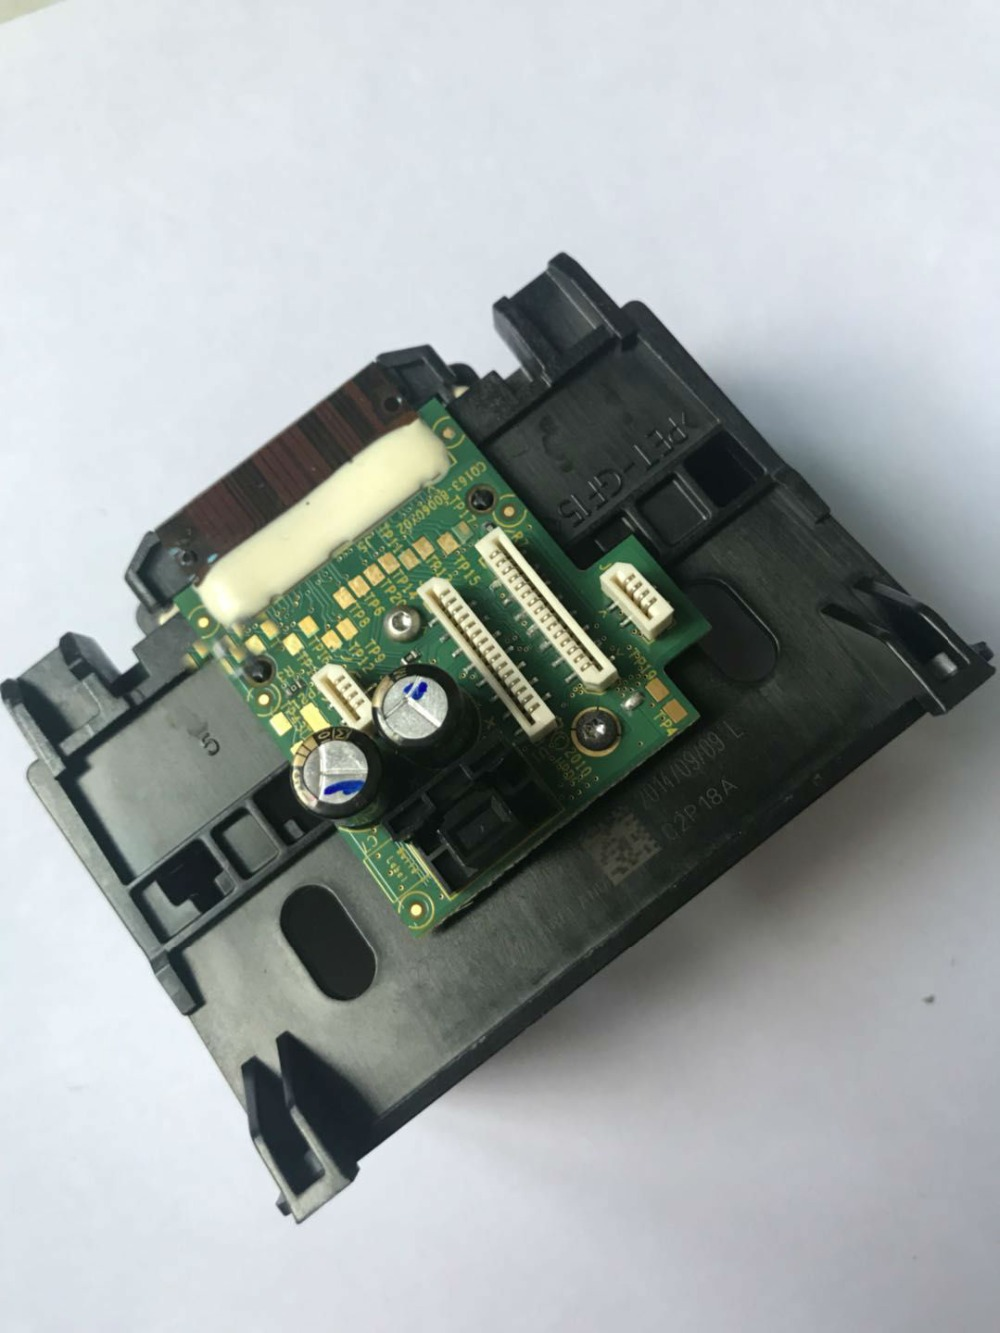 NEW printhead for hp 934 935 934xl 935xl print head 934 for hp printhead for hp officejet pro 6230 6830 6815 6812 6835 printer цена